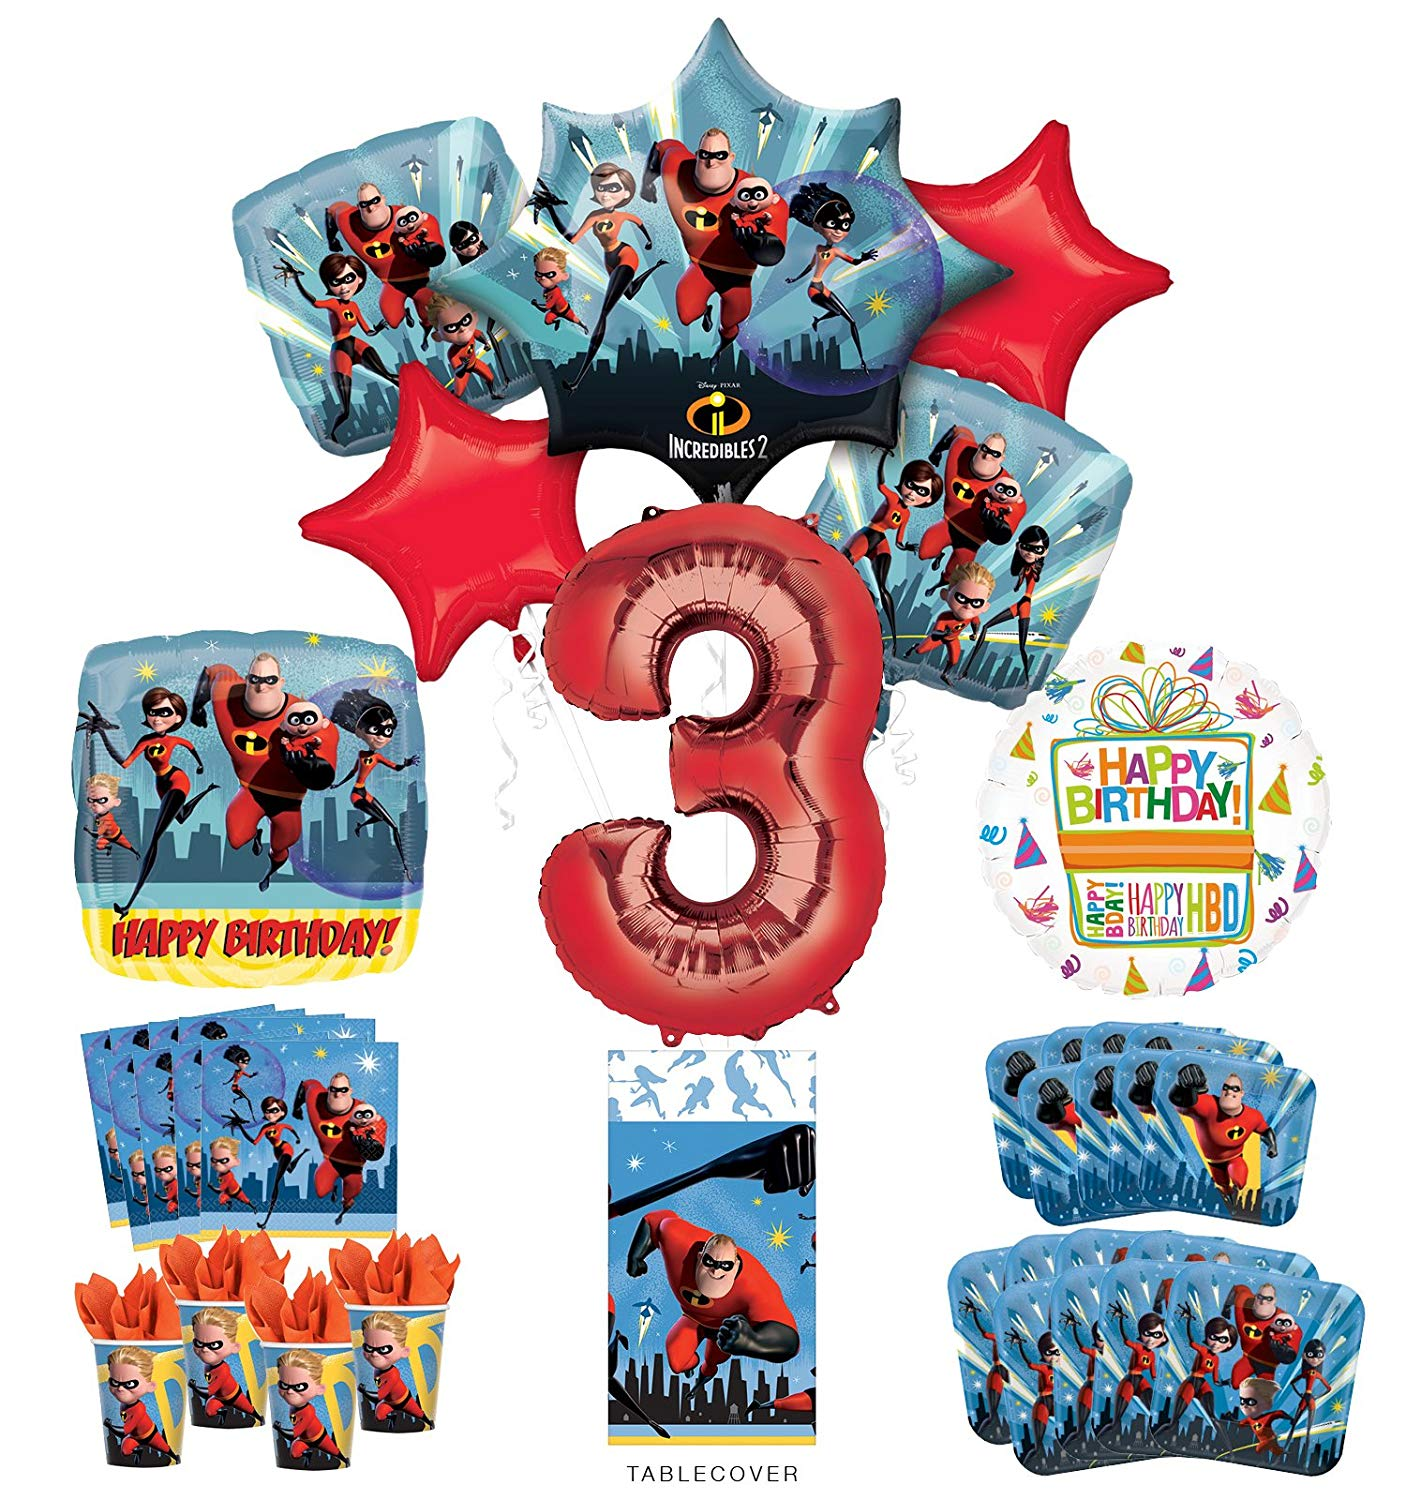 b582412d4 Get Quotations · Incredibles Party Supplies 8 Guests 3rd Birthday Balloon  Bouquet Decorations